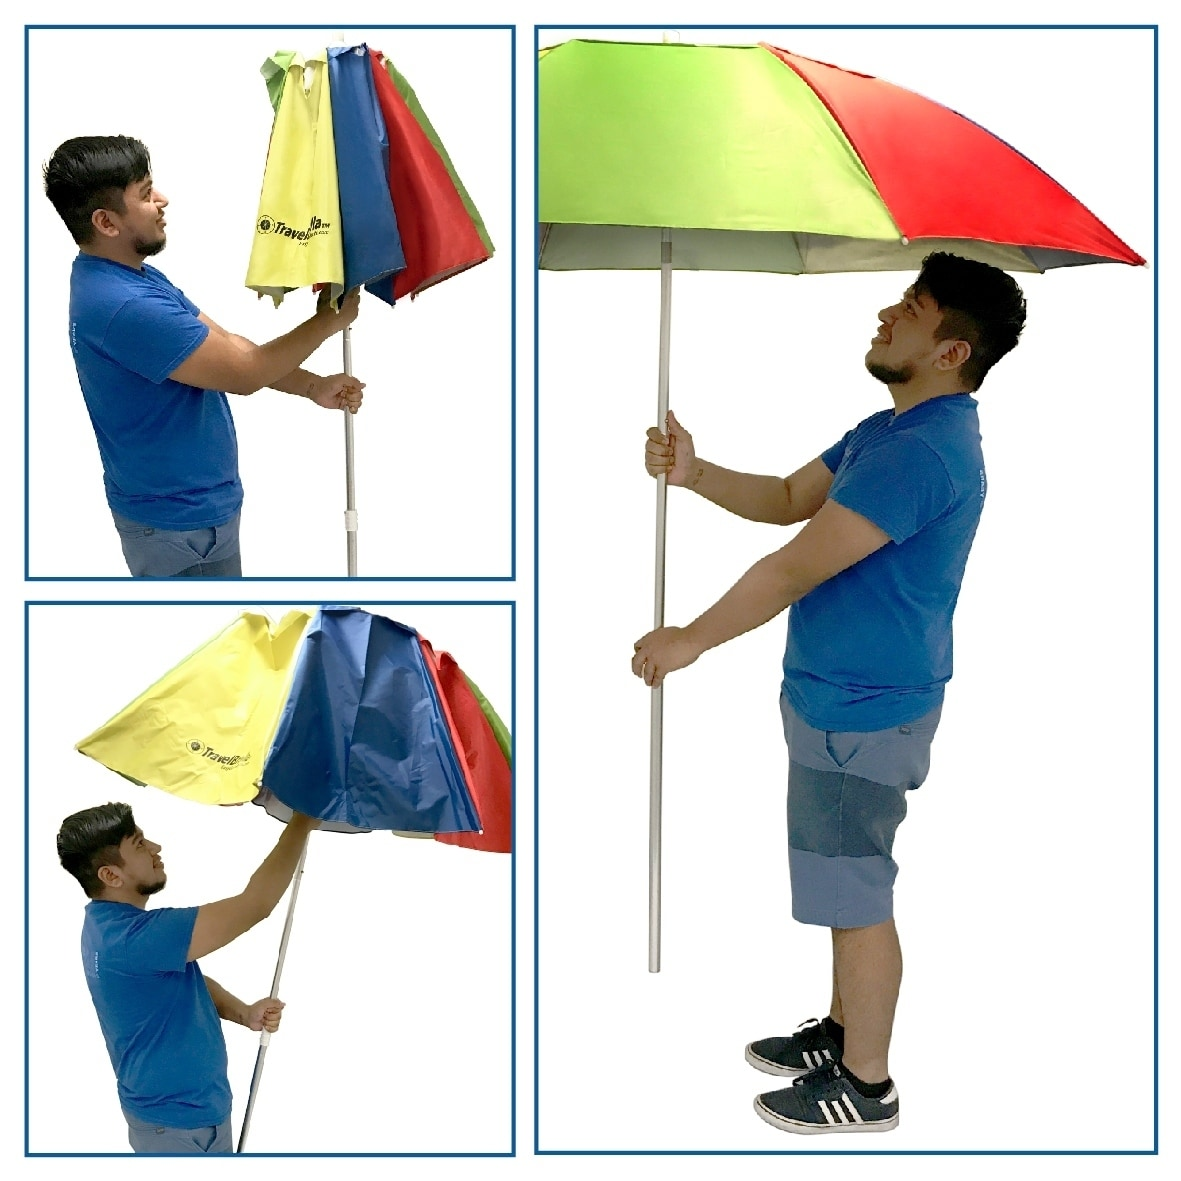 Travel Portable Beach Umbrella Compact Sun Fits In Your Suitcase Carry Bag Included Free Shipping On Orders Over 45